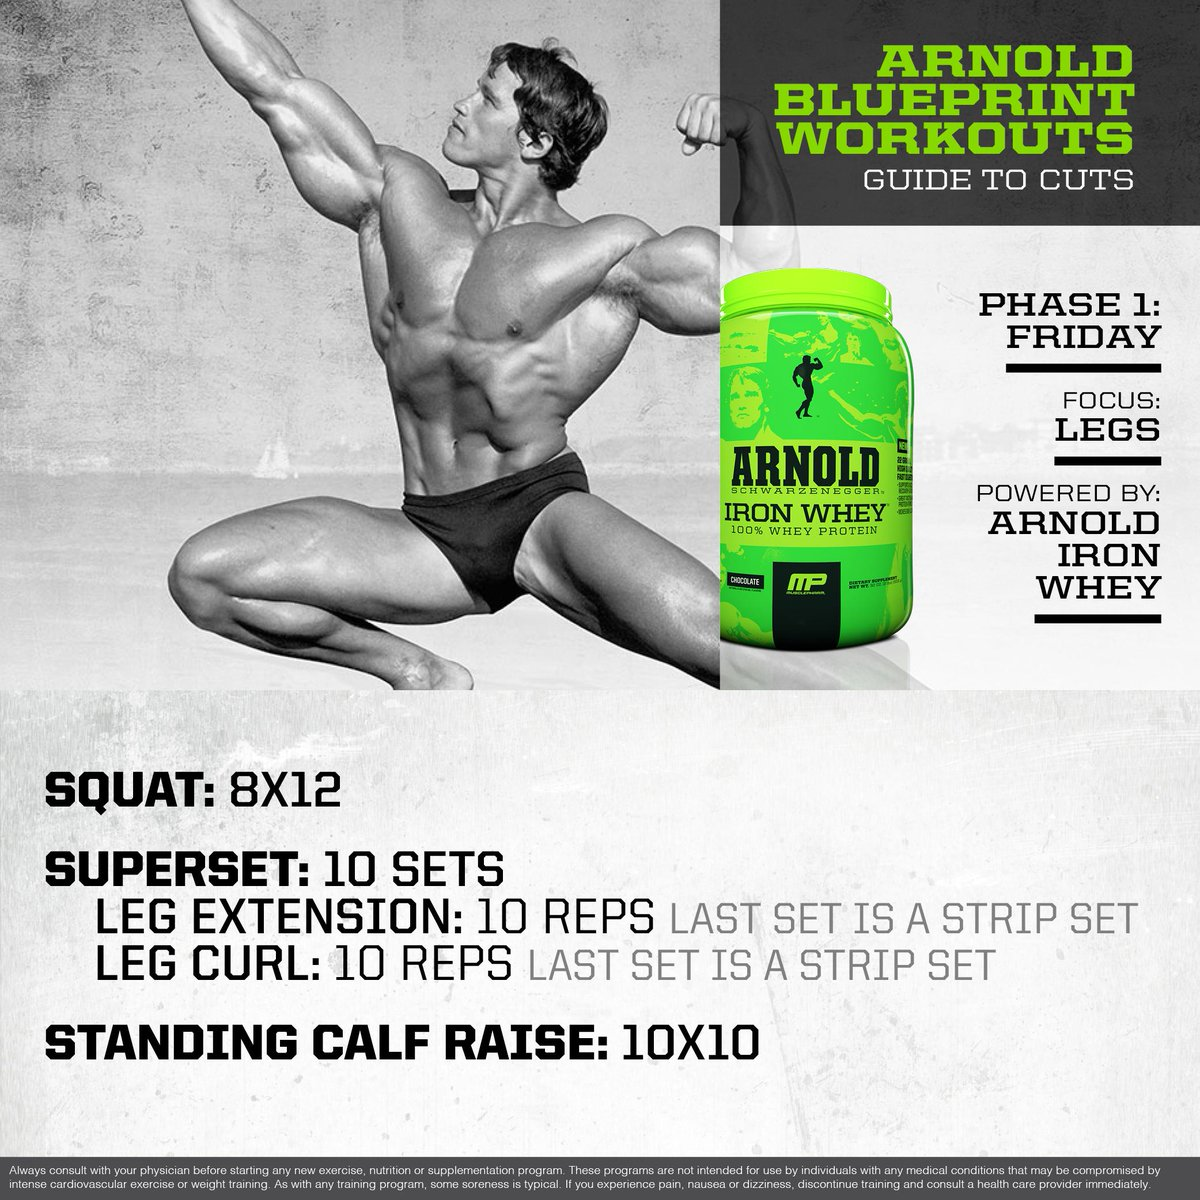 Musclepharm arnold workout program viewyoga arnold blueprint workout design templates malvernweather Image collections